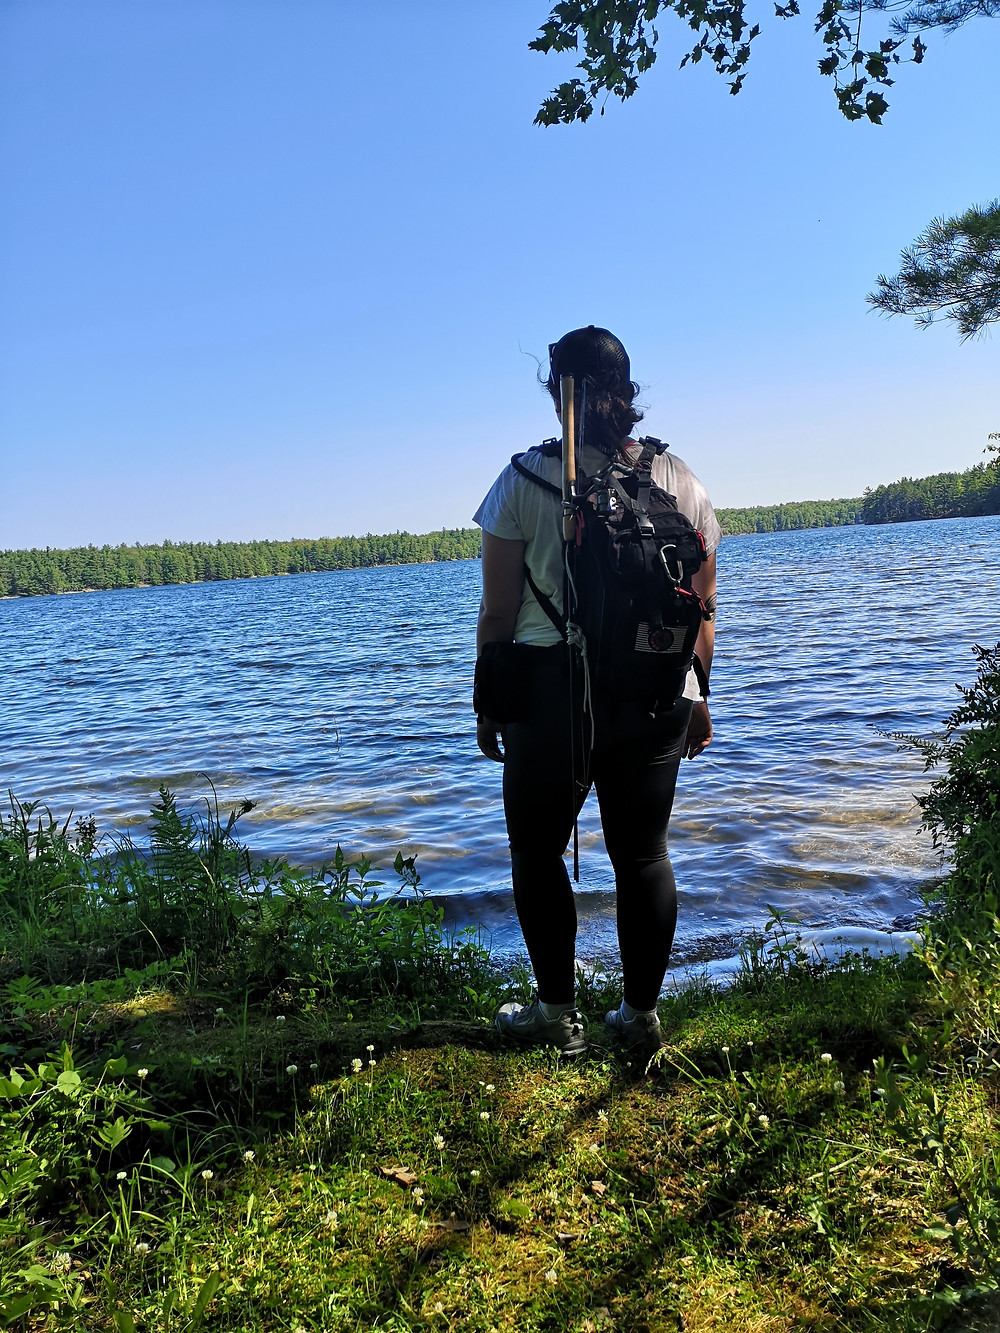 Bec standing in front of a lake with hiking bag on